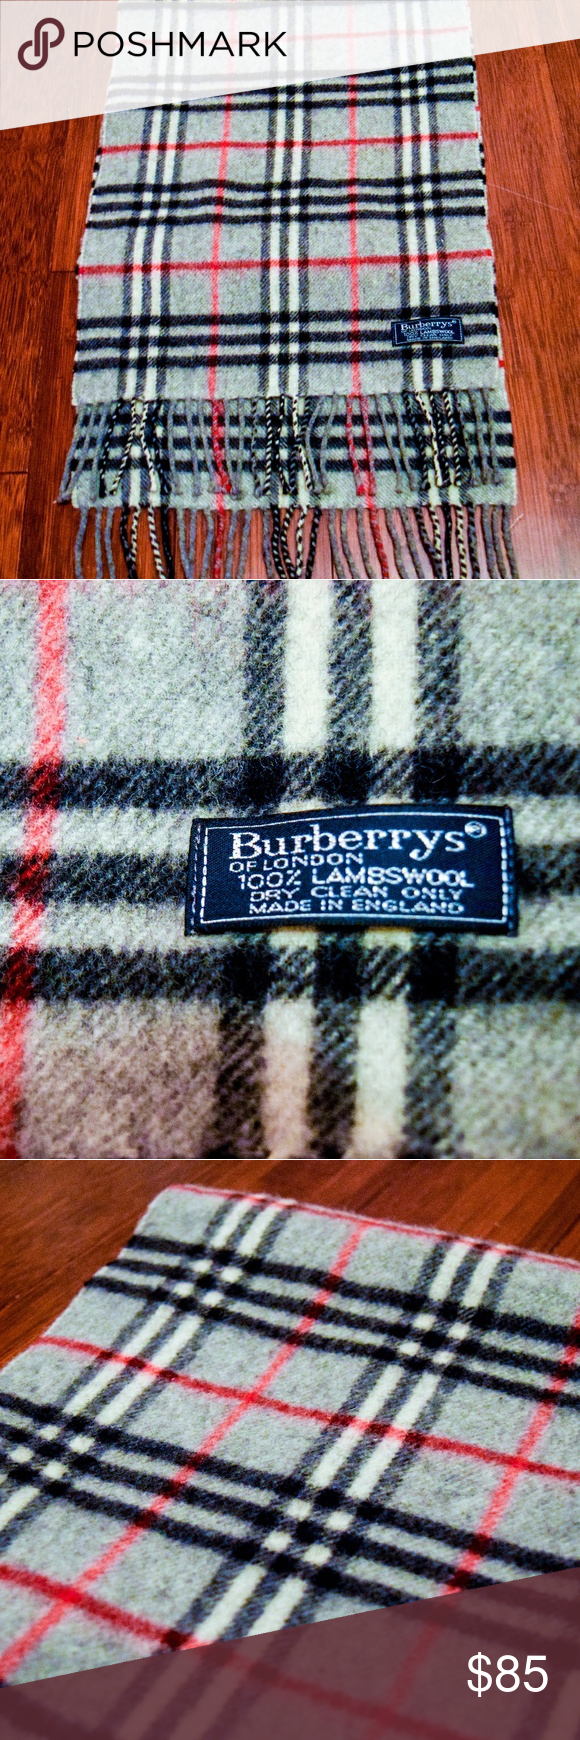 """Burberry Vintage Scarf 100% Wool Gray Check A vintage Burberry scarf in the classic gray check pattern. Made of 100% Lambswool in perfect condition. A great unisex accessory that is ultra-warm in winter months. A perfect and timeless accessory.  Note: The """"Burberry's"""" label is 100% authentic and is what Burberry used to be named. Burberry Accessories Scarves & Wraps"""